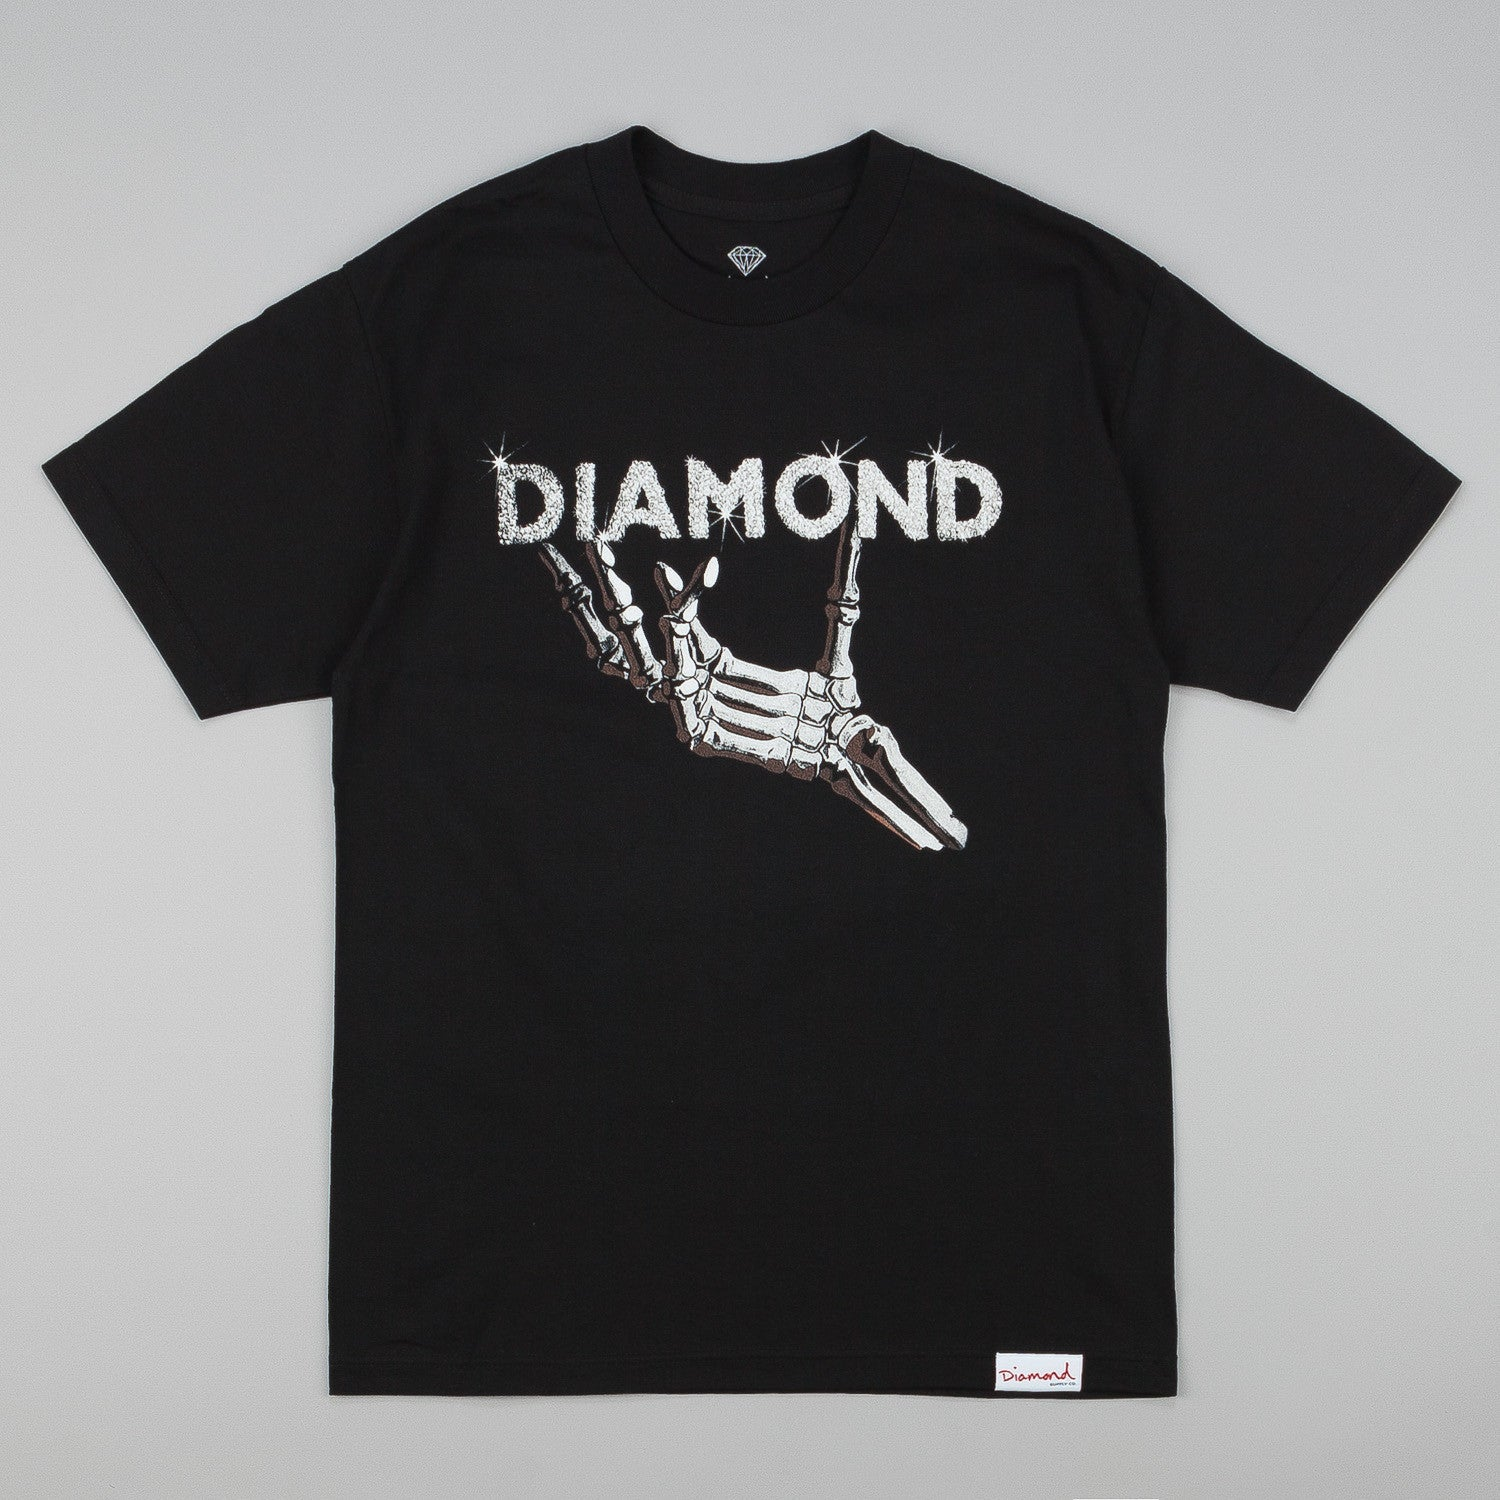 Diamond Styx and Stones T-Shirt Black